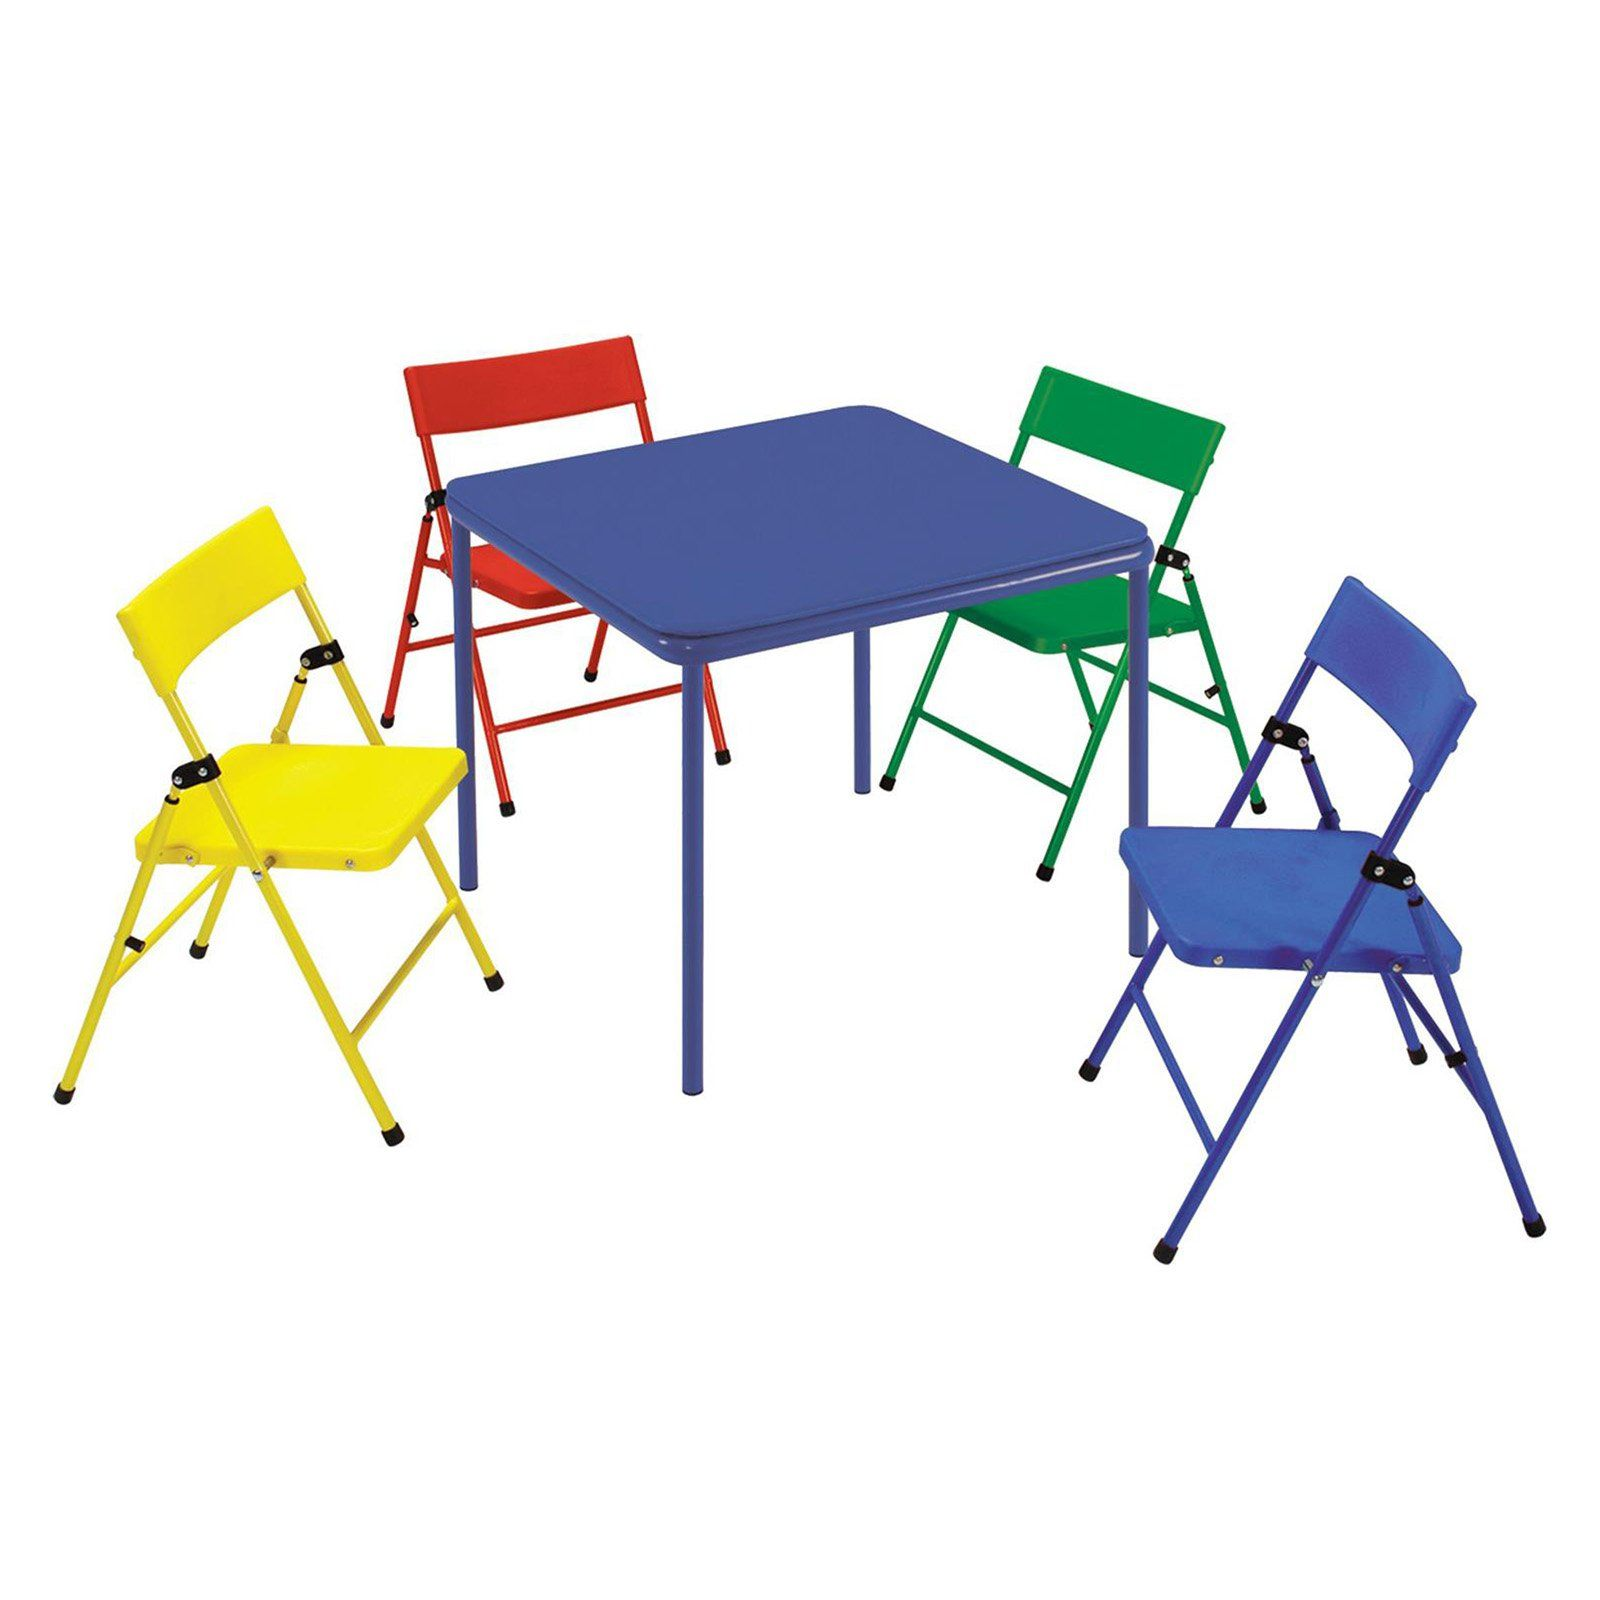 Cosco Folding Table Chair 5 Piece Set Beig Green Table Chair